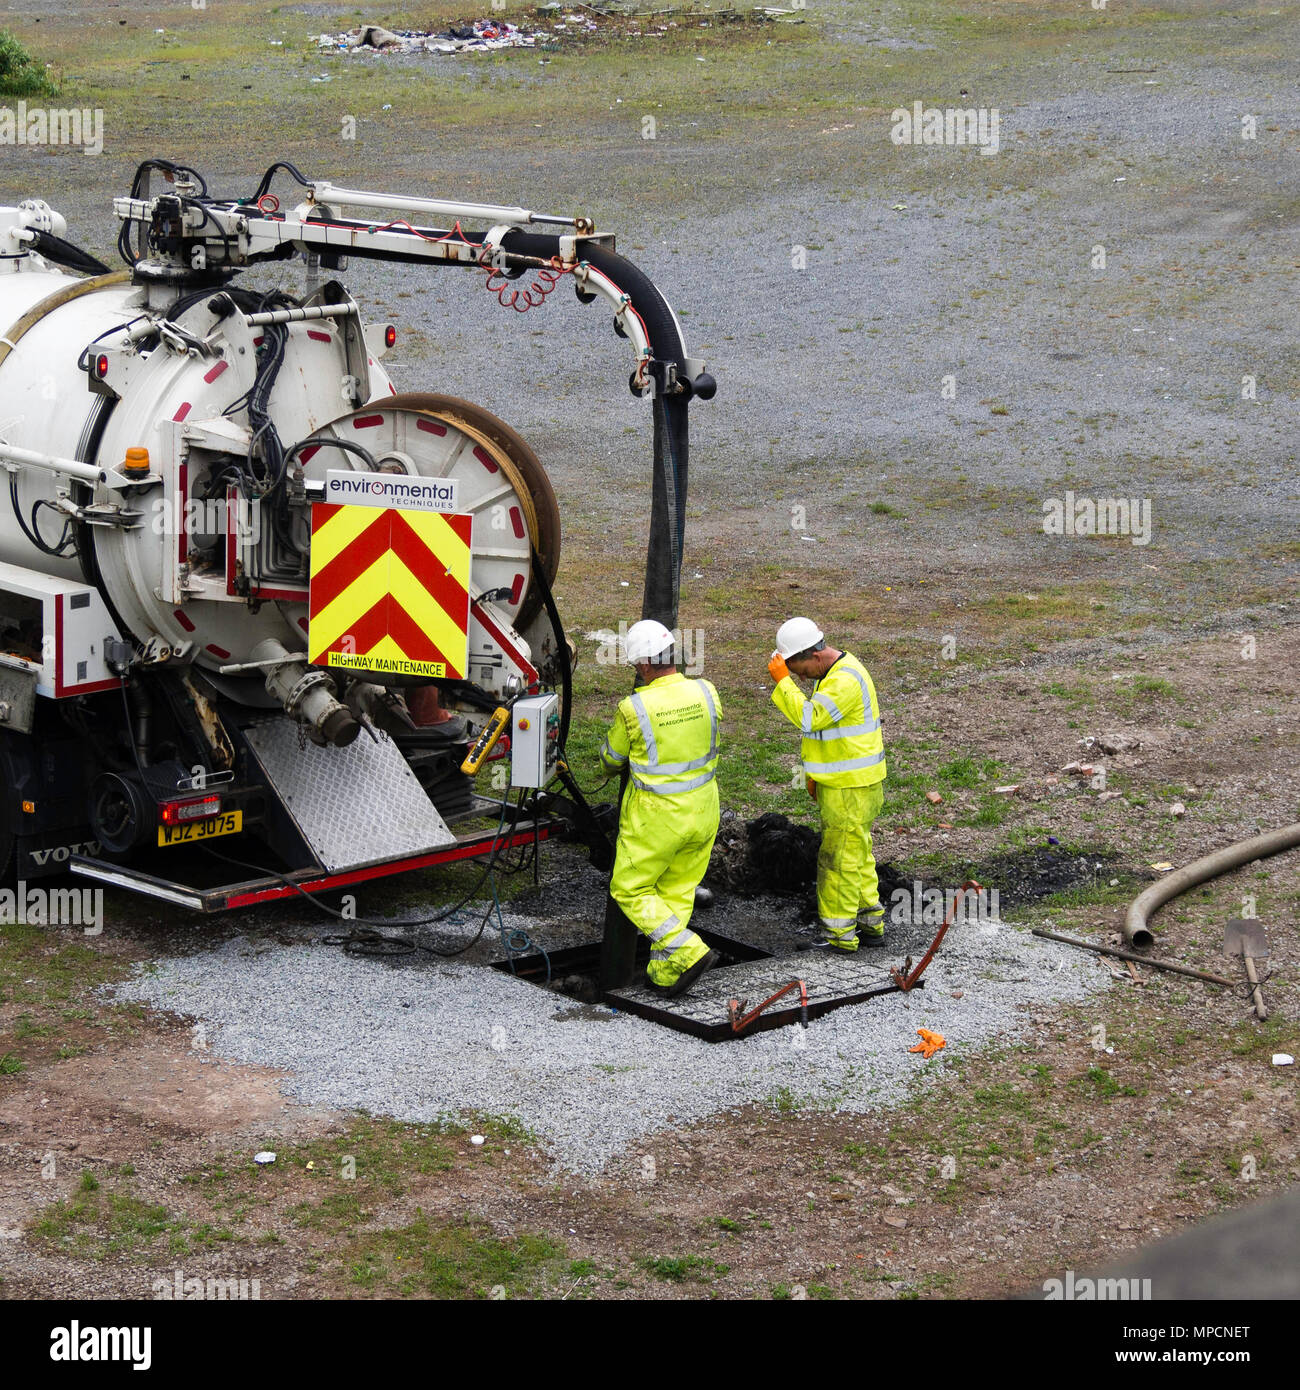 Workmen in high vis jackets operating equipment to clear drains - Stock Image